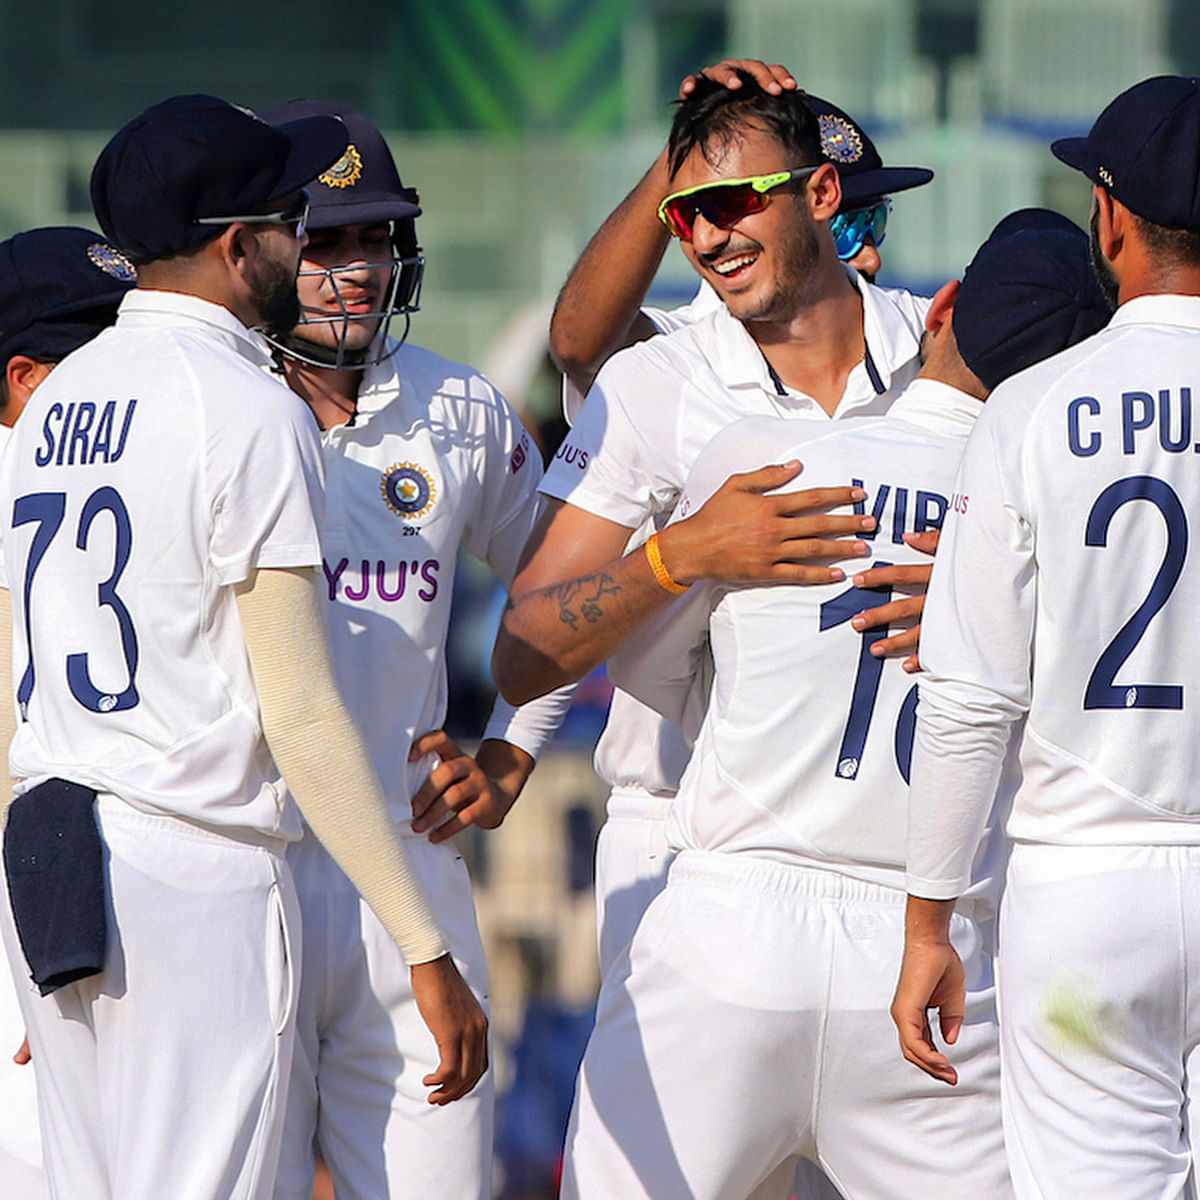 Ind vs Eng, 2nd Test: India beat England by 317 runs in Chennai